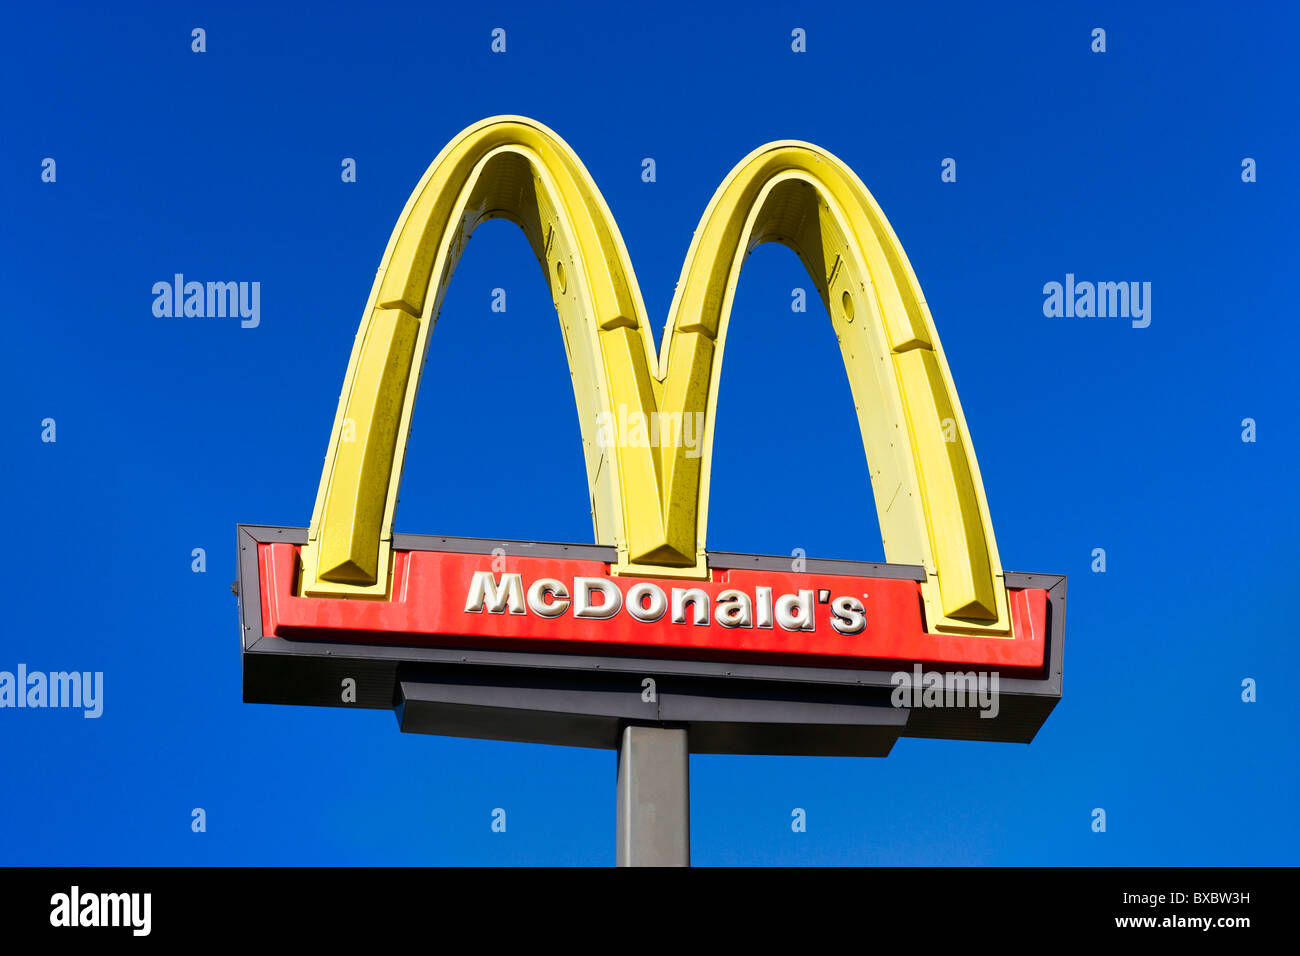 McDonalds sign, Haines City, Central Florida, USA - Stock Image